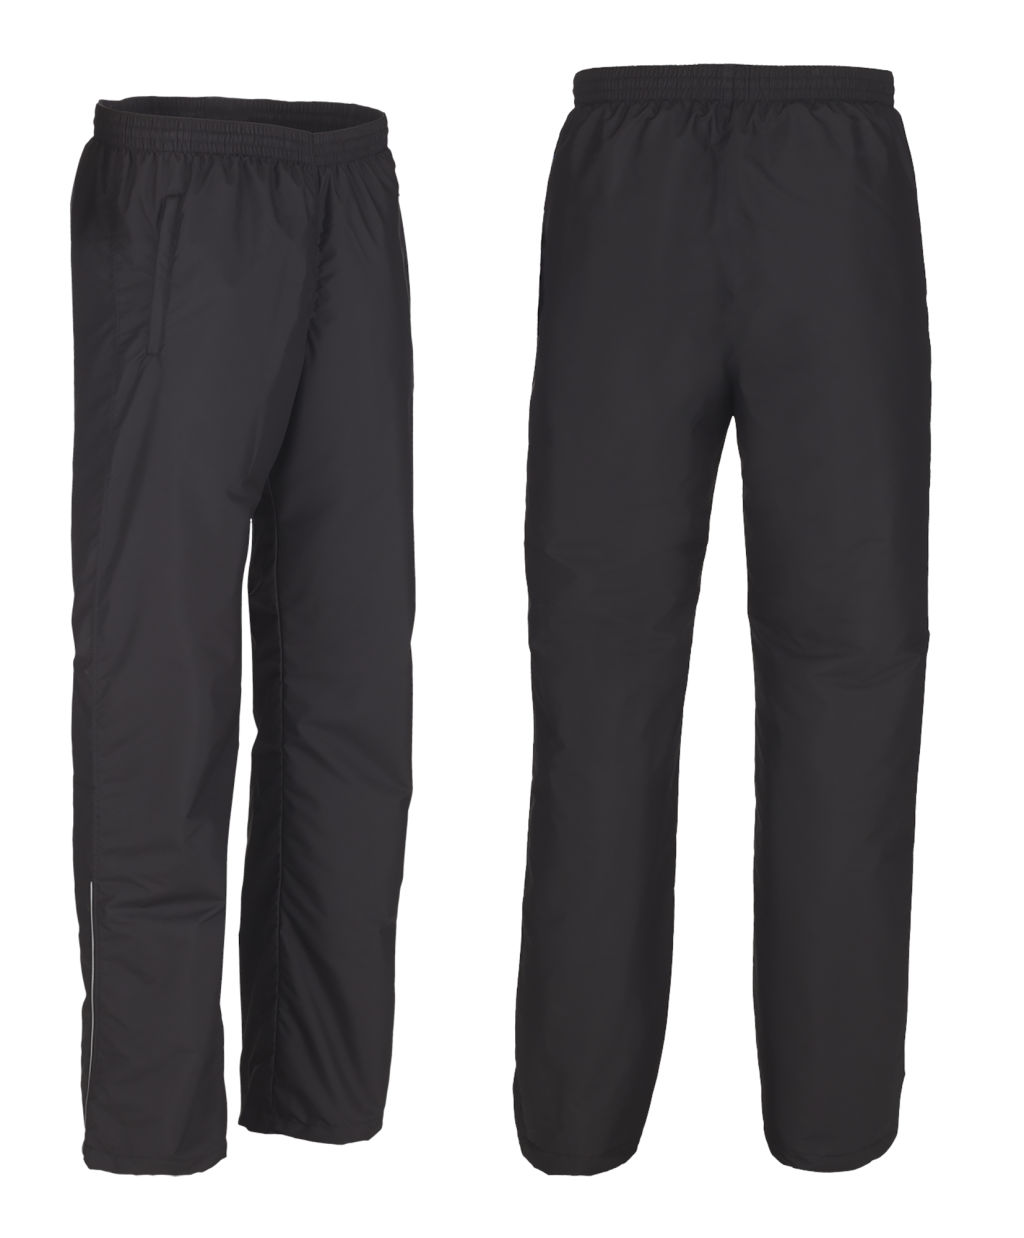 Sail&ski Do It Pant Short